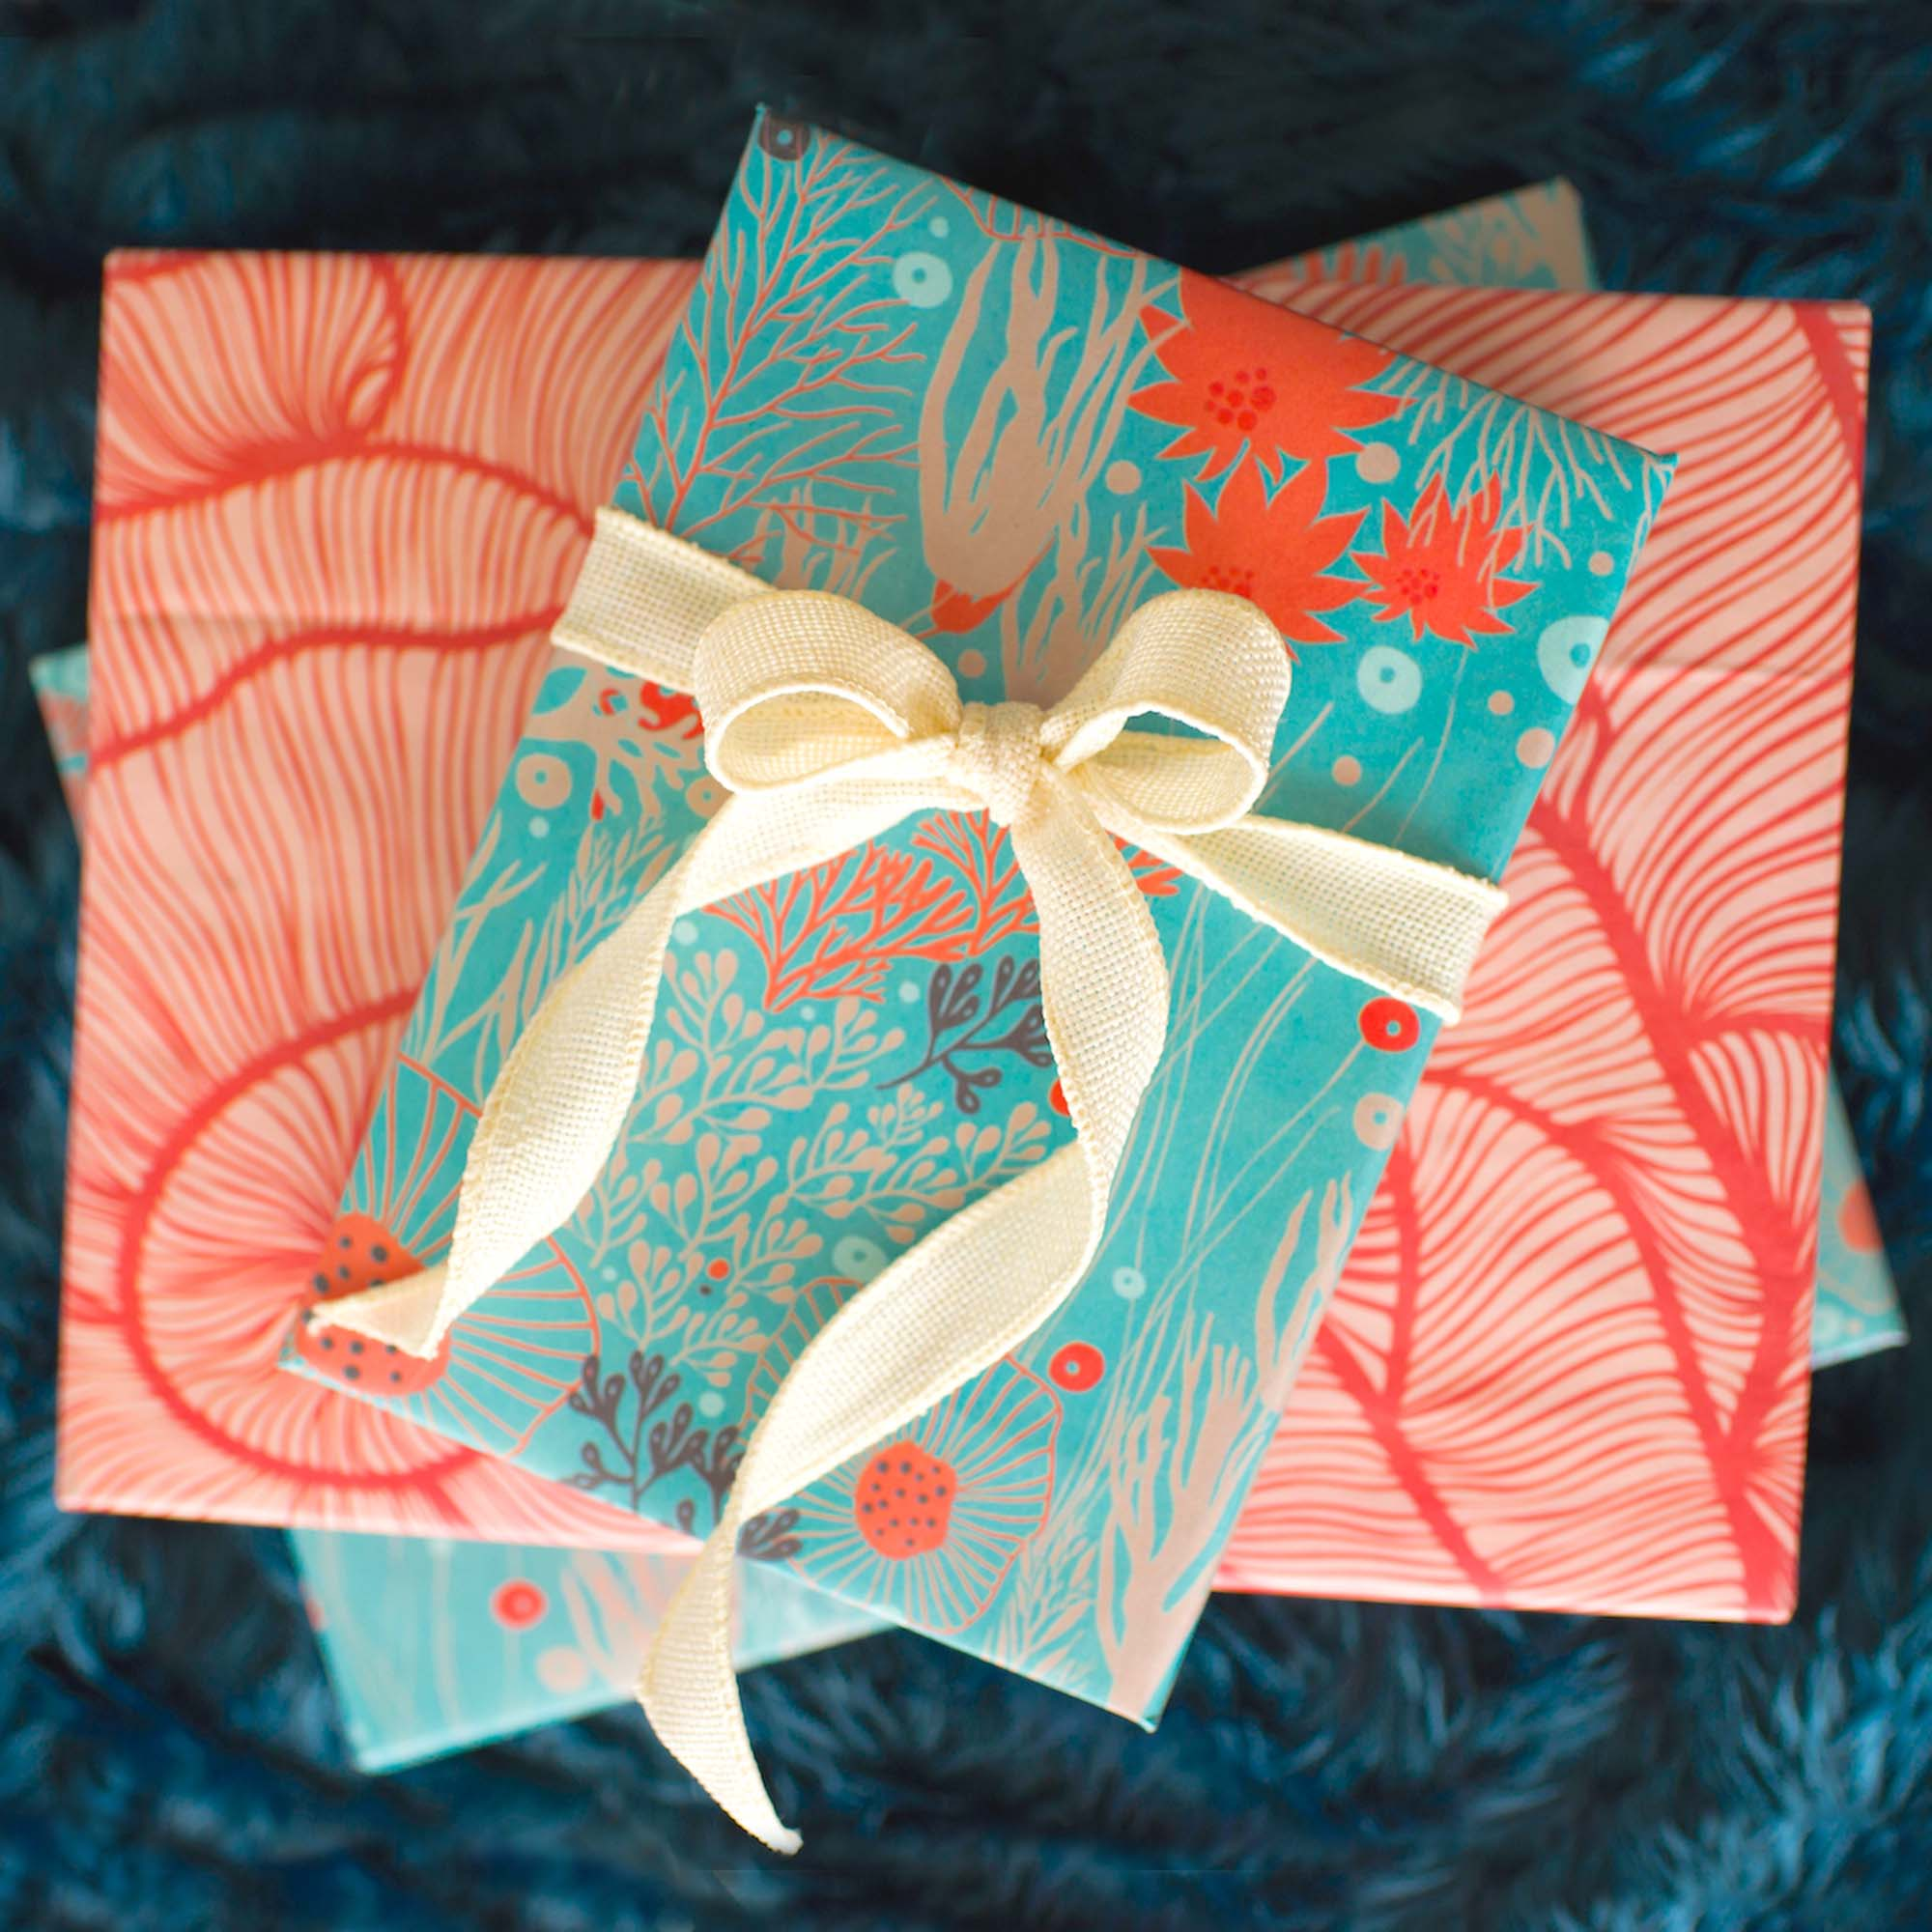 gifts stacked with wrappily wrapping paper, underwater flora design, reversible blue and red, white think ribbon tied into bow